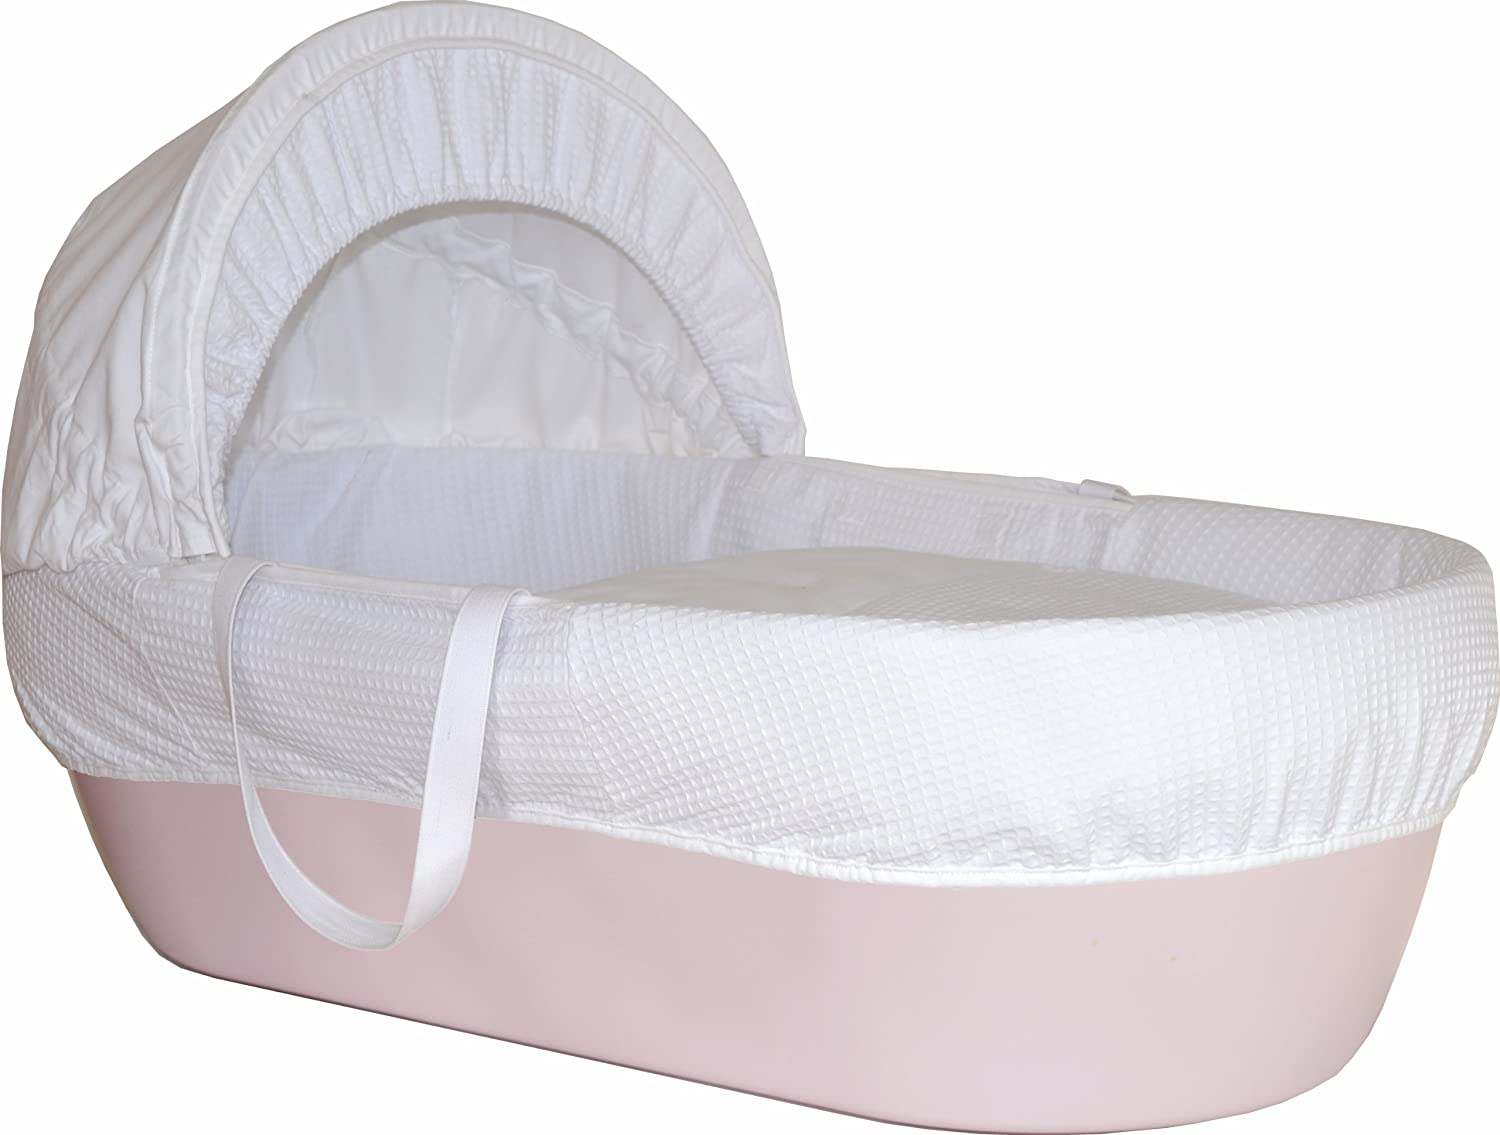 Shnuggle Moses Basket (Pebble Grey) Shnuggle Ltd SHN-GRY-WAF